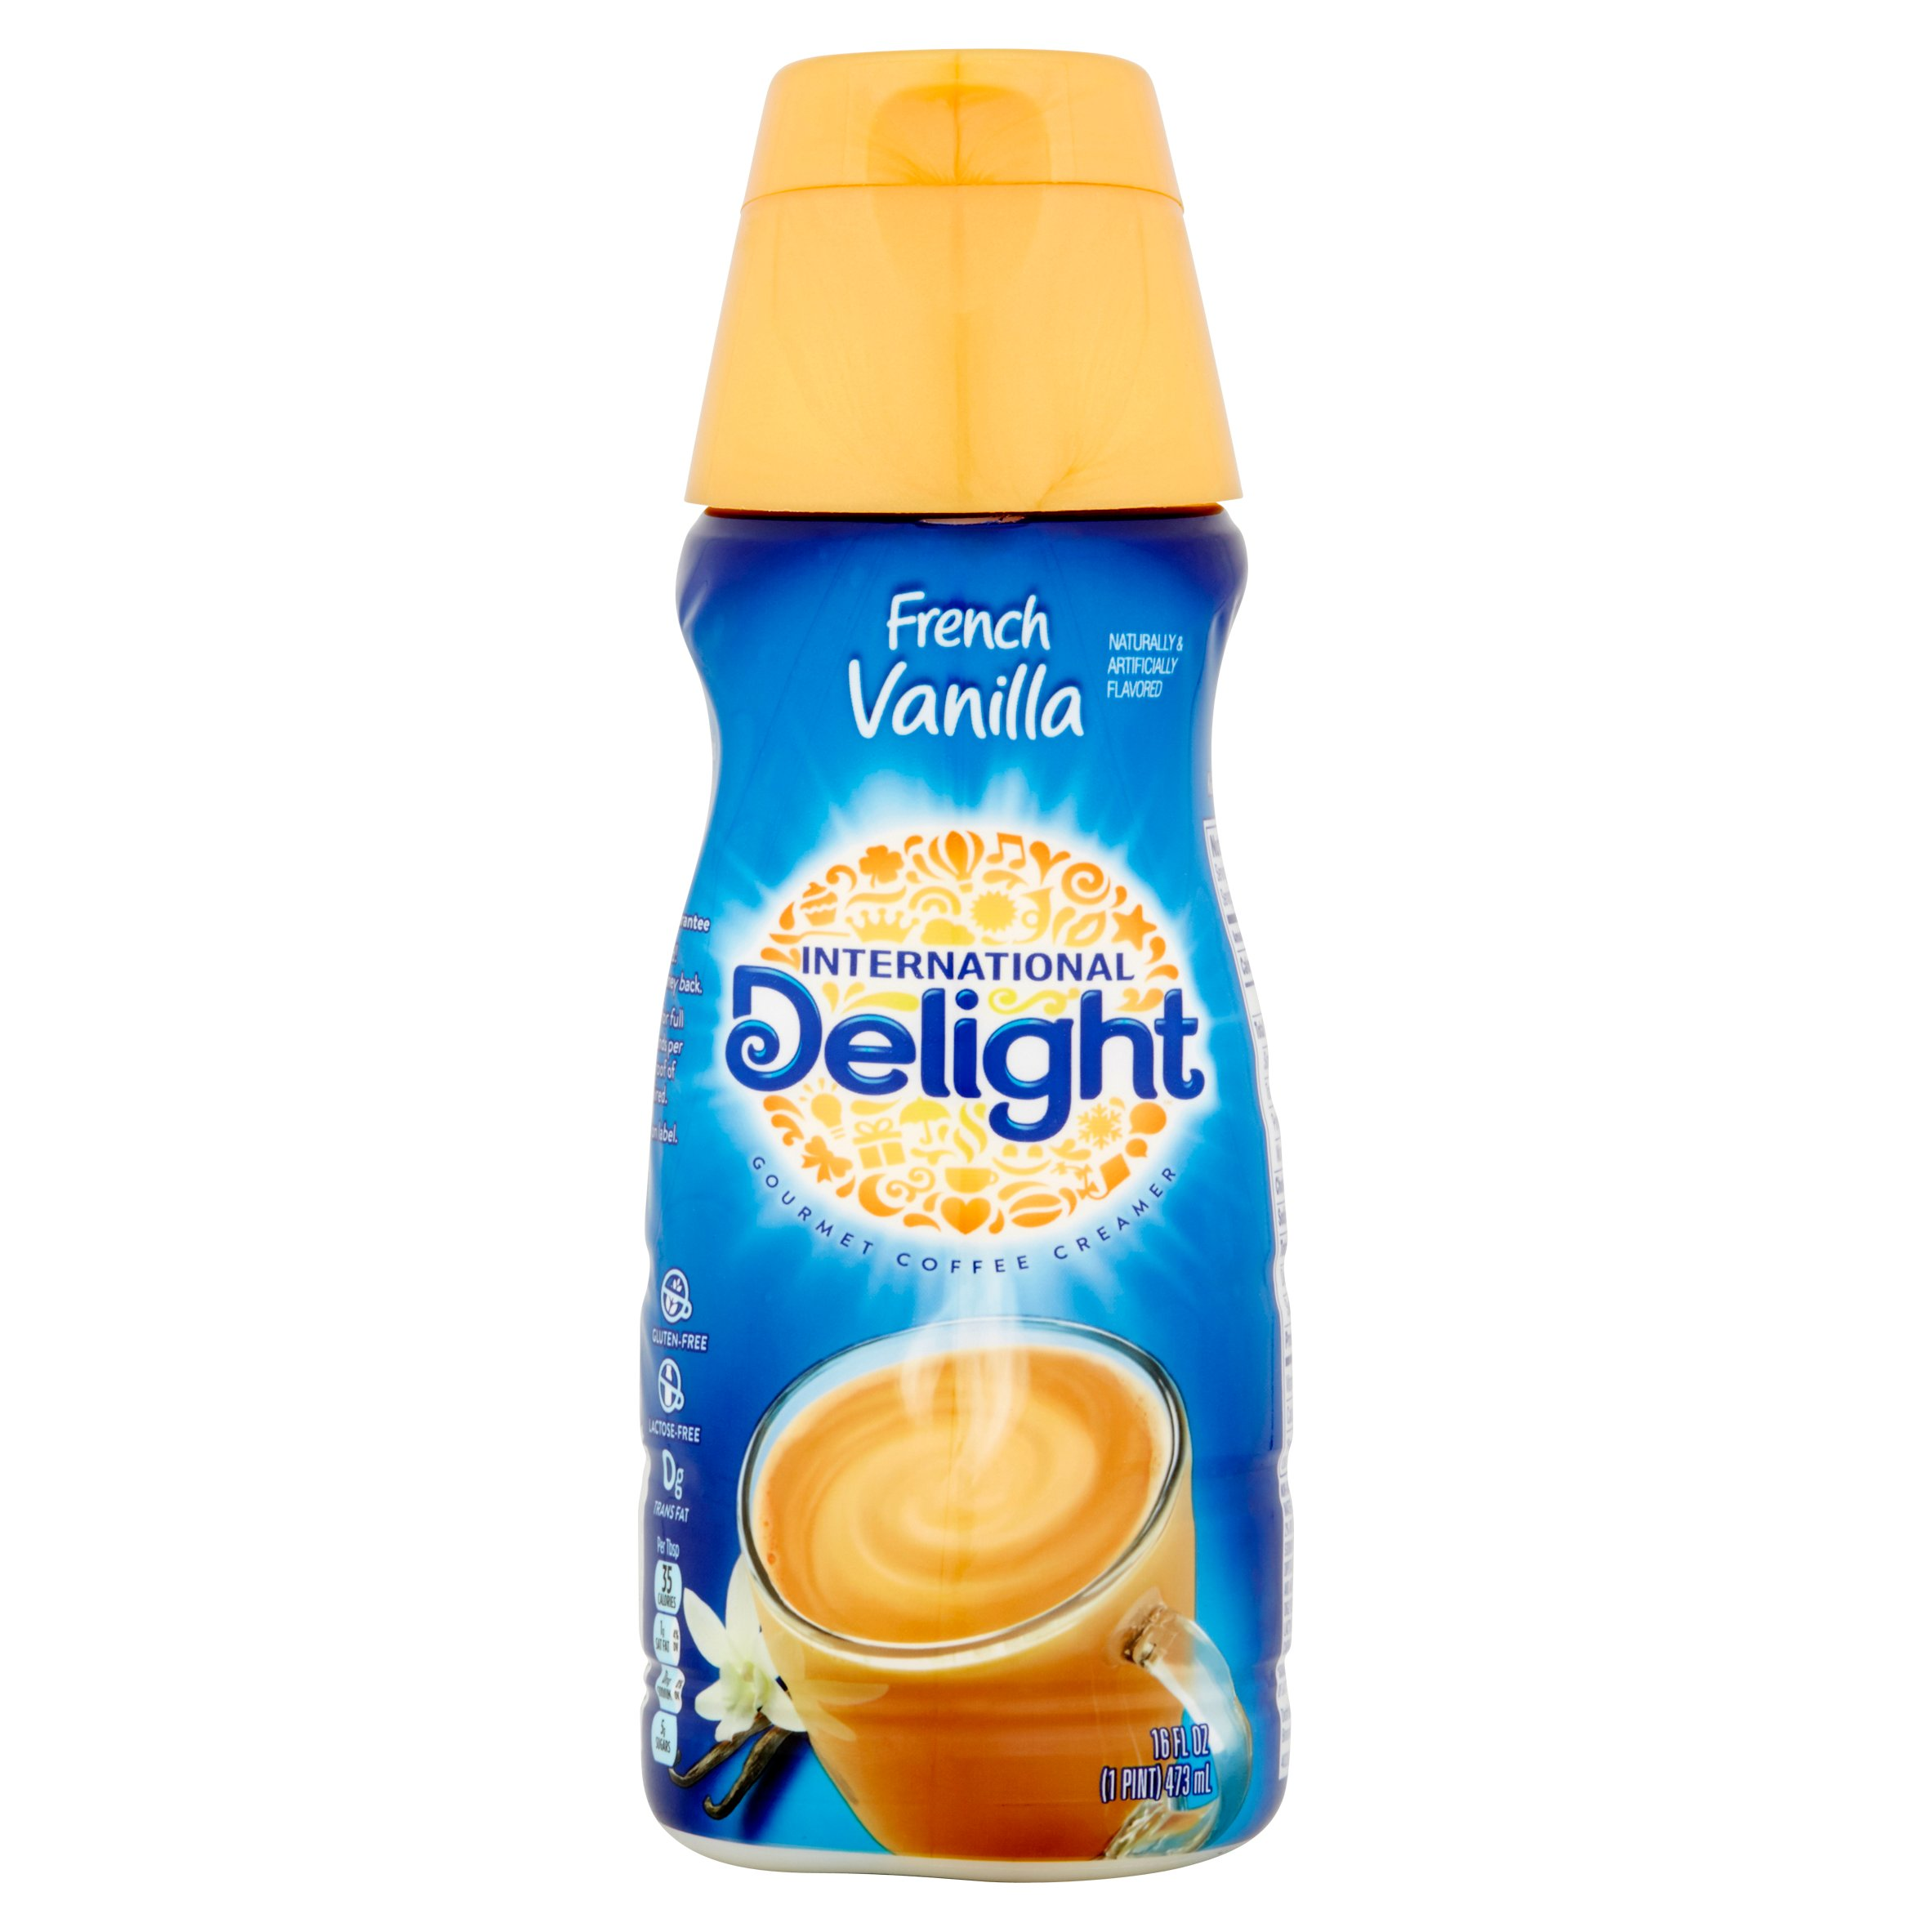 International Delight French Vanilla Gourmet Liquid Coffee Creamer, 16 oz